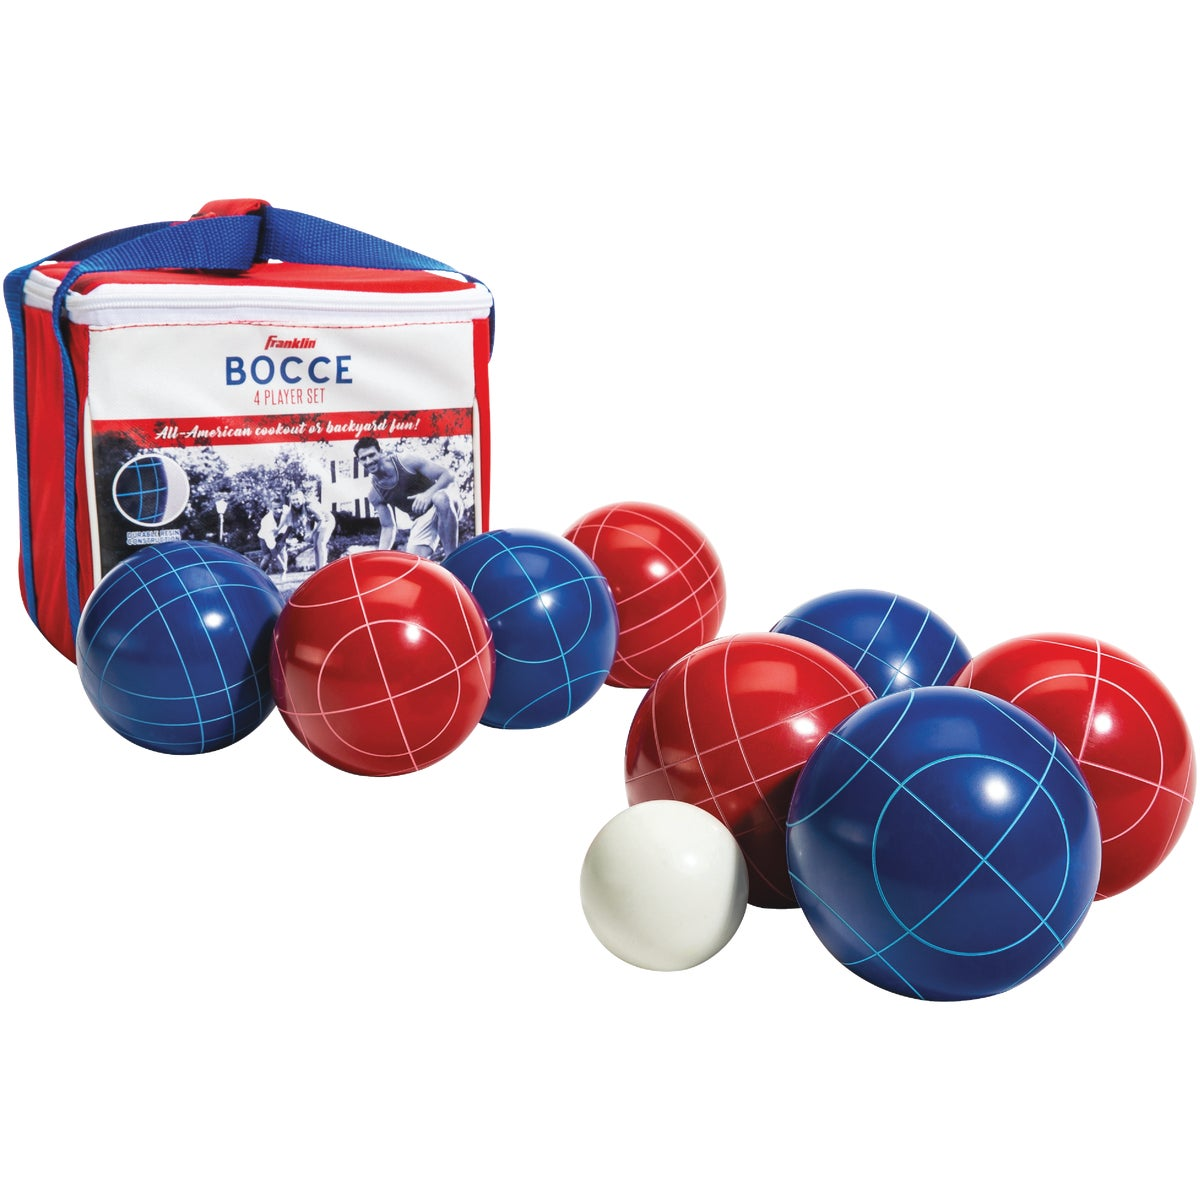 BOCCE BALL SET - 50102 by Franklin Sports